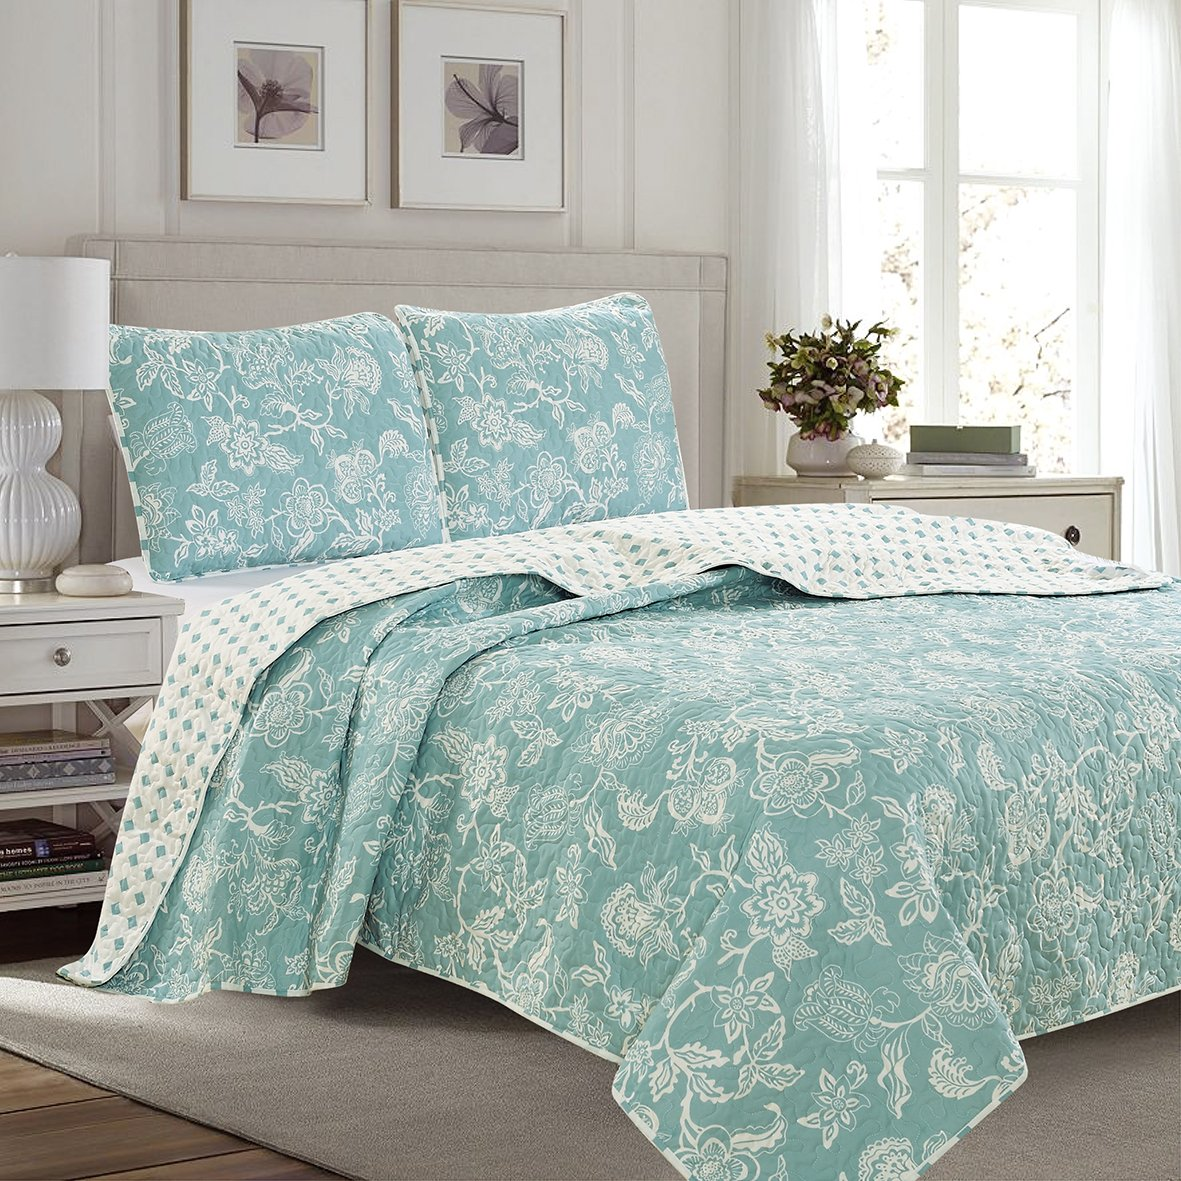 Great Bay Home 3-Piece Reversible Quilt Set with Shams. All-Season Bedspread with Floral Print Pattern in Contemporary Colors. Emma Collection By Brand. (Twin, Blue)